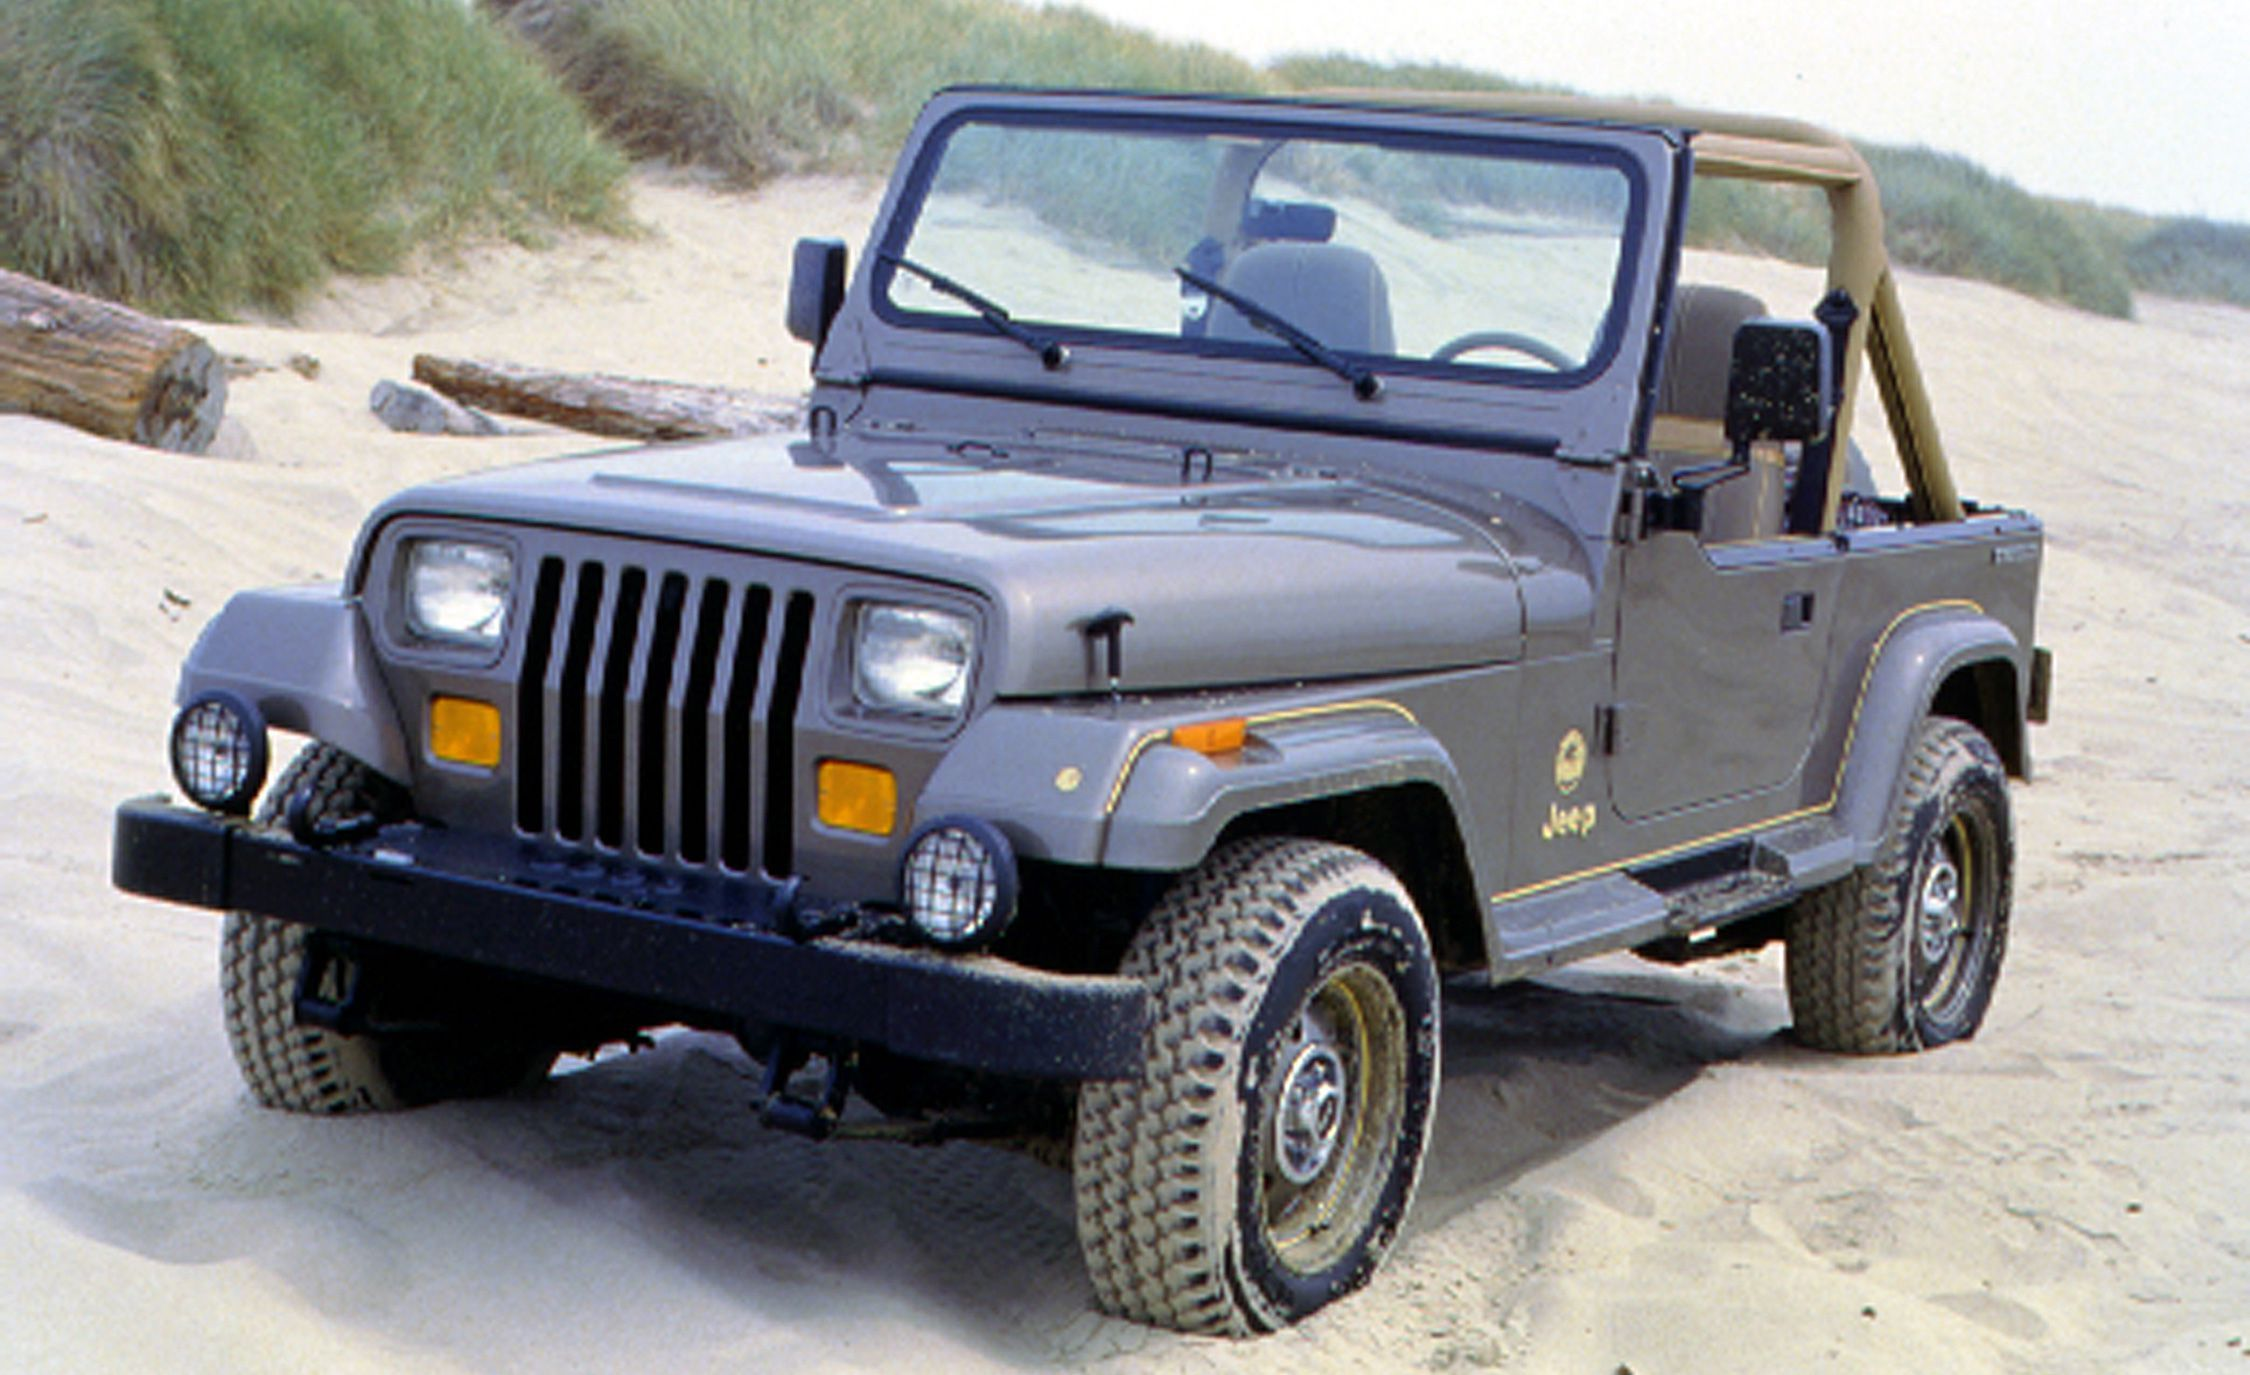 The Complete Visual History Of The Jeep Wrangler From 1986 To Present Jeep Wrangler 1987 Jeep Wrangler Jeep Wrangler Yj